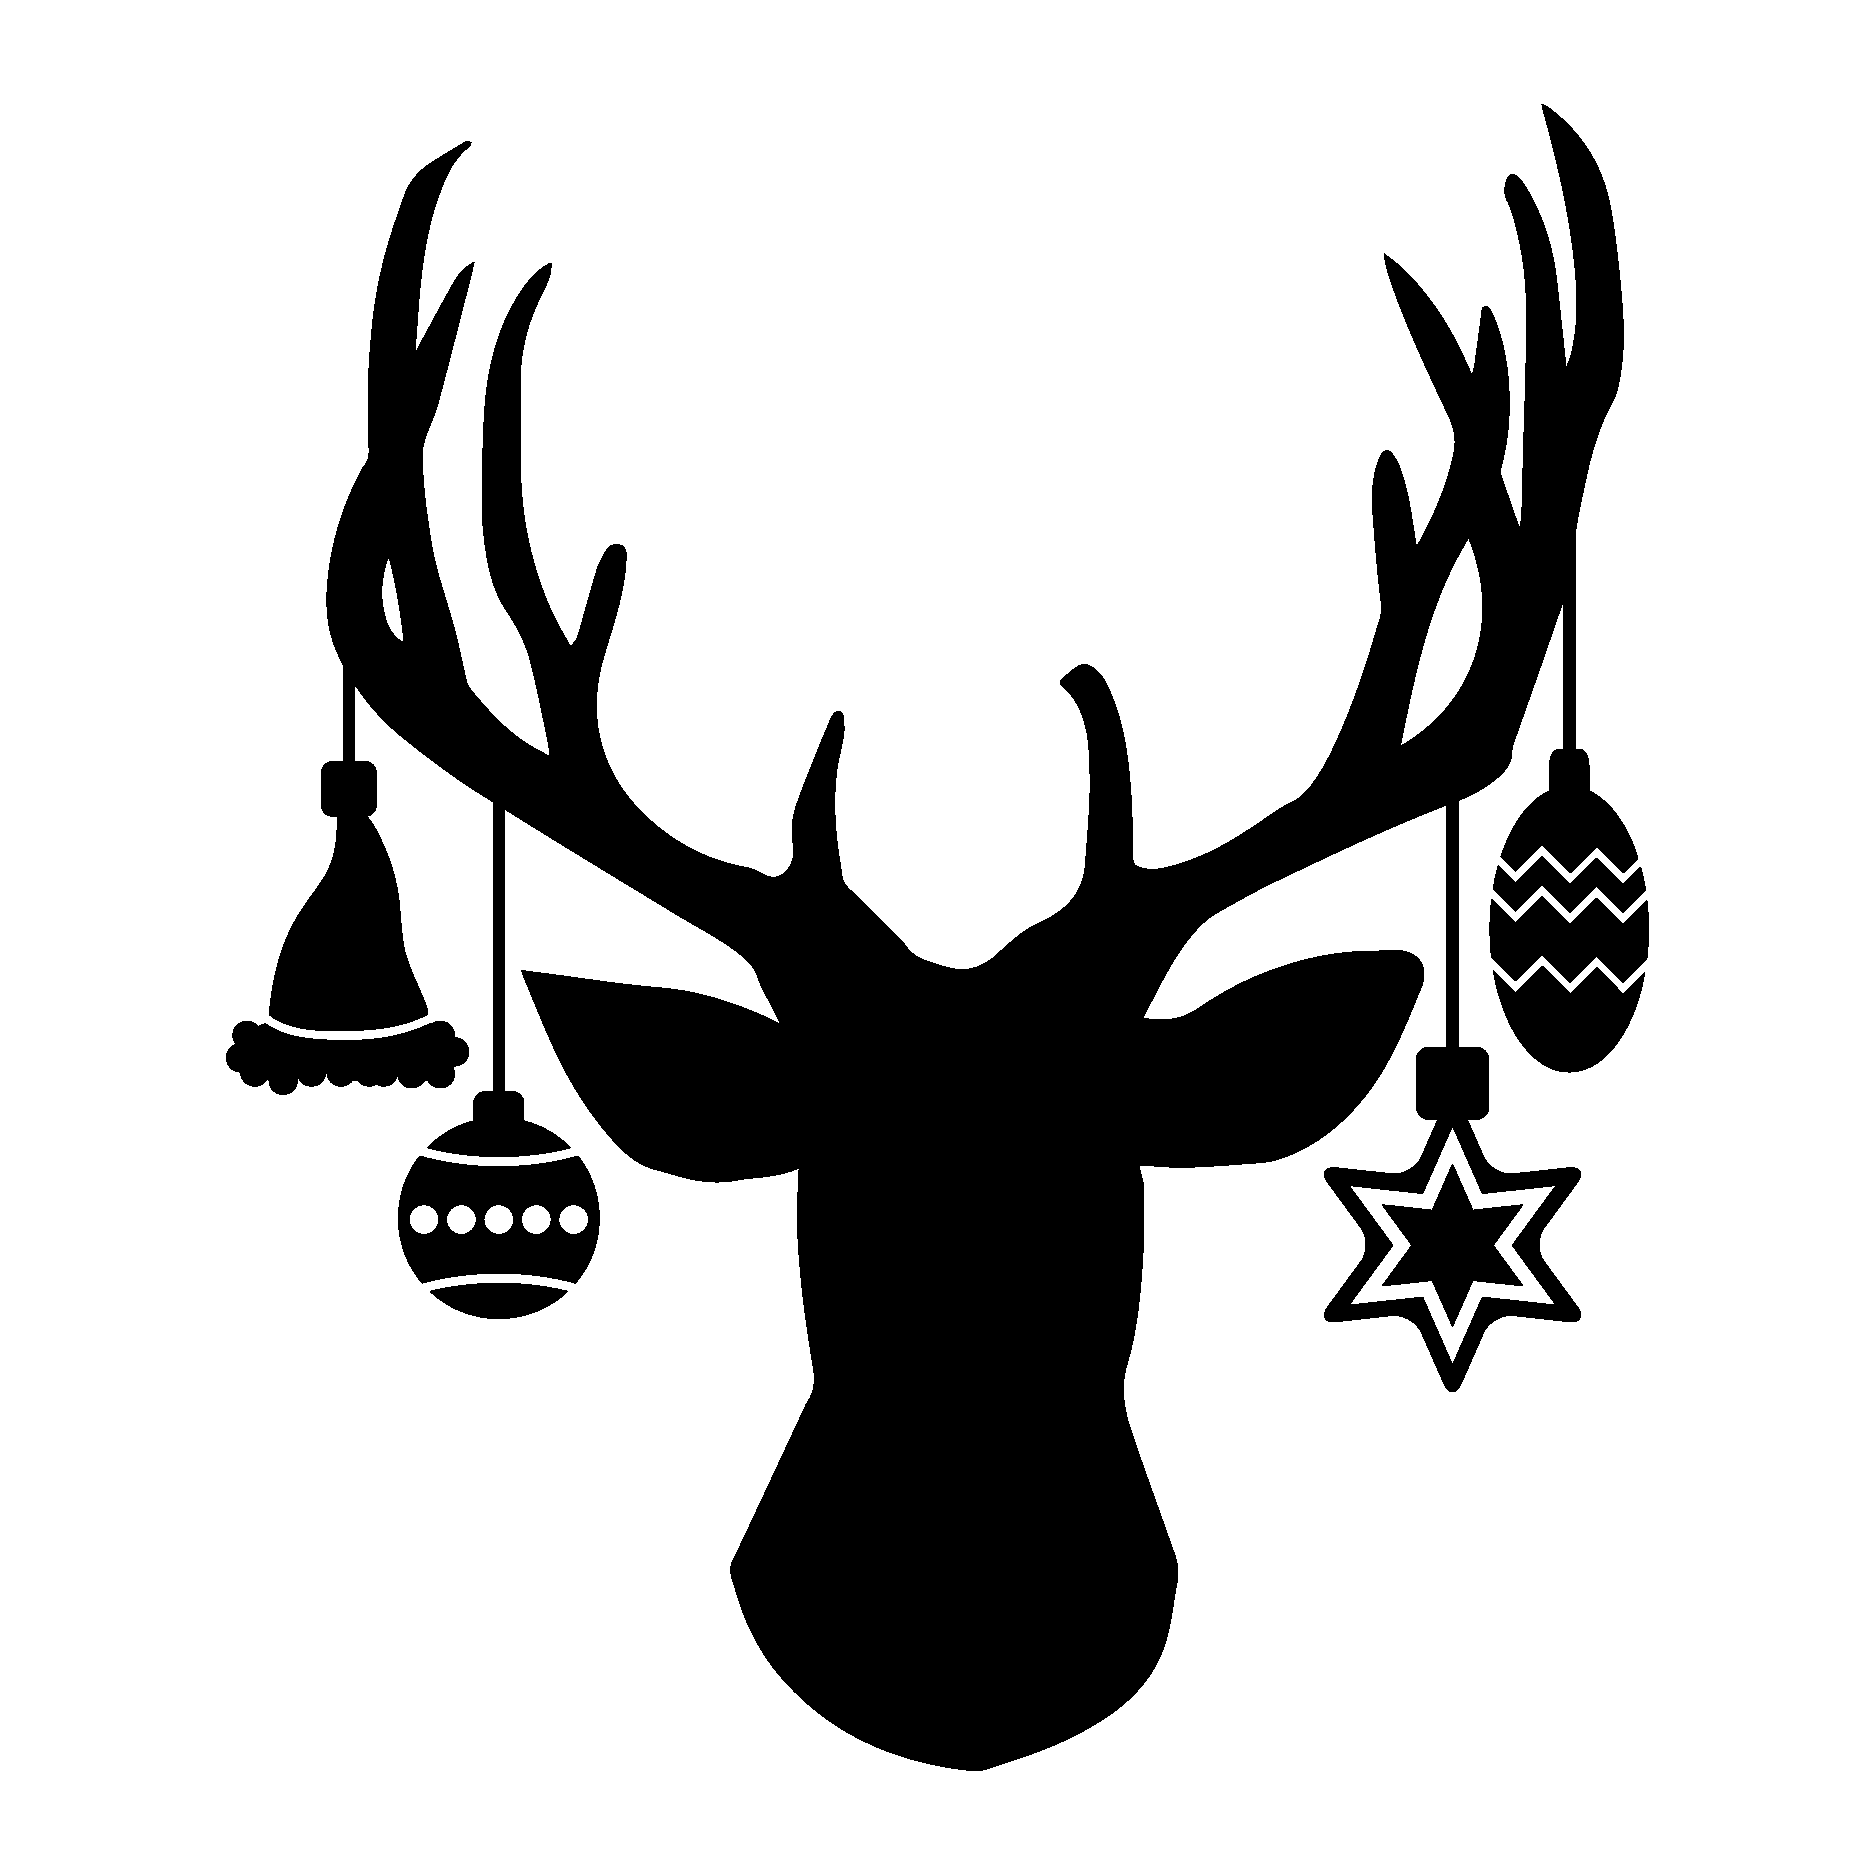 Deer Head Ornament Wall Quotes Decal